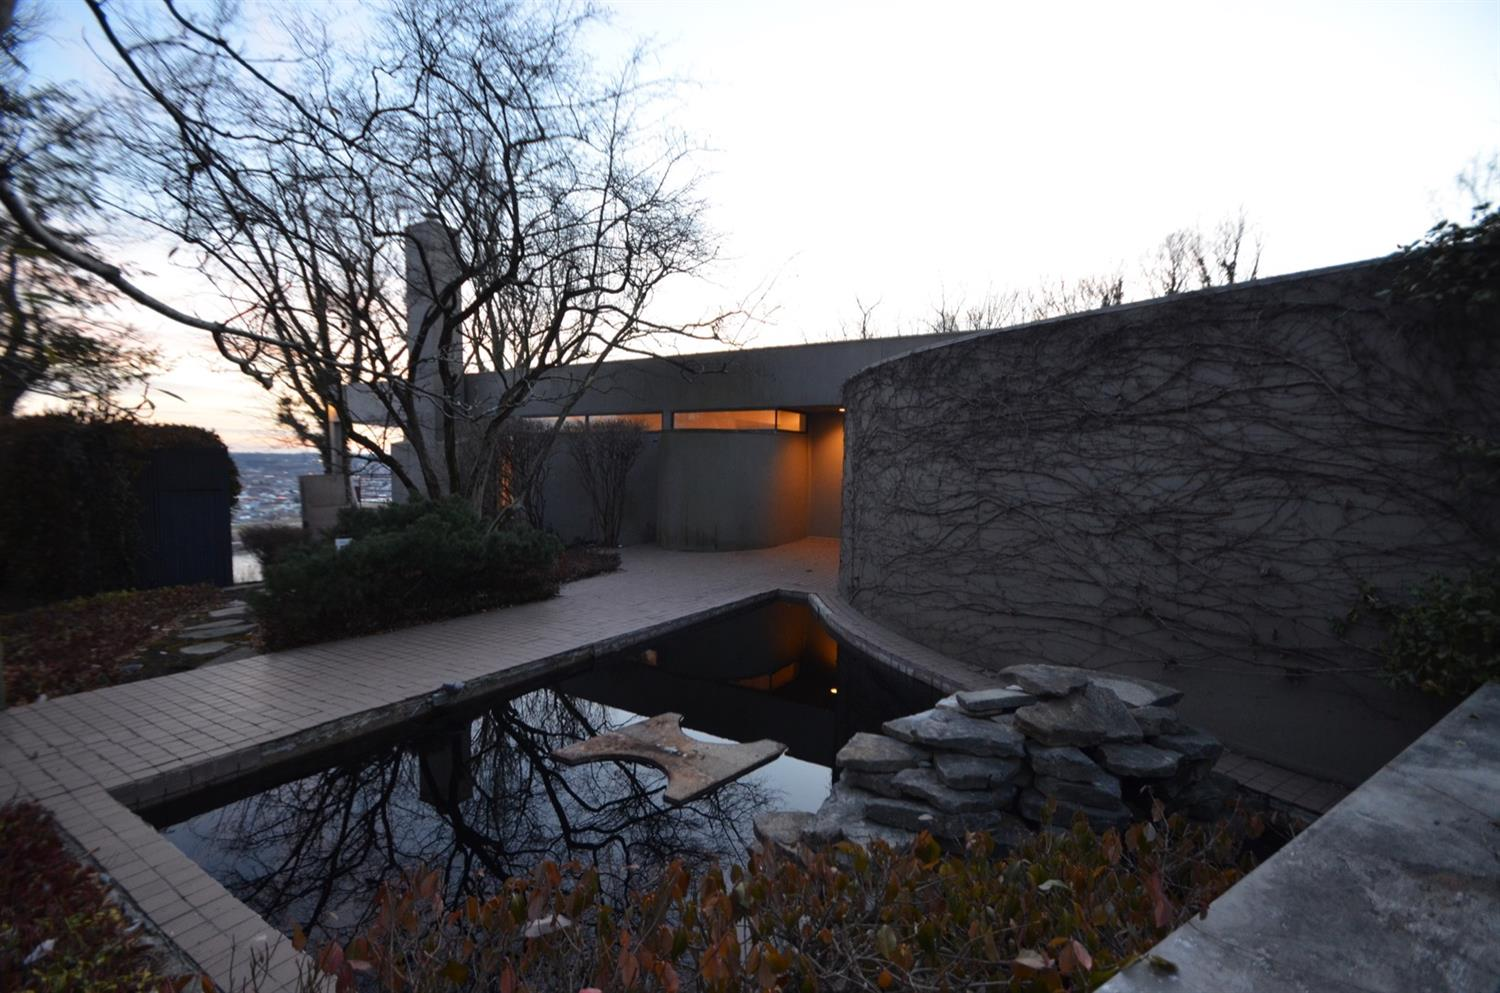 Twilight entry courtyard view.